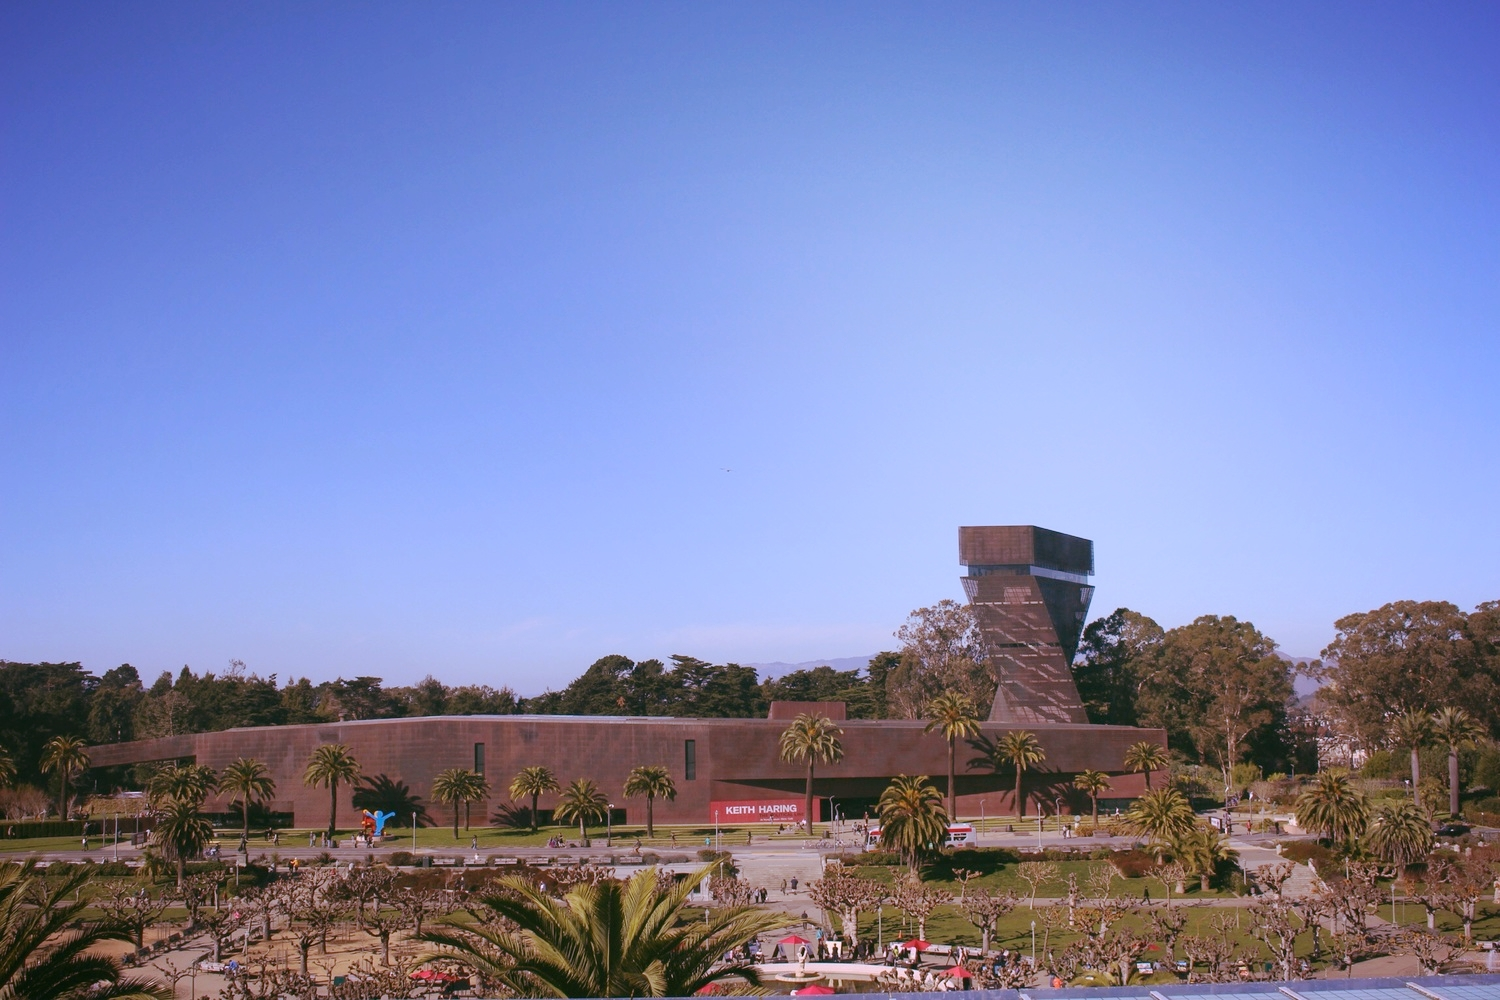 Our view from the roof. That's beautiful DeYoung Museum.